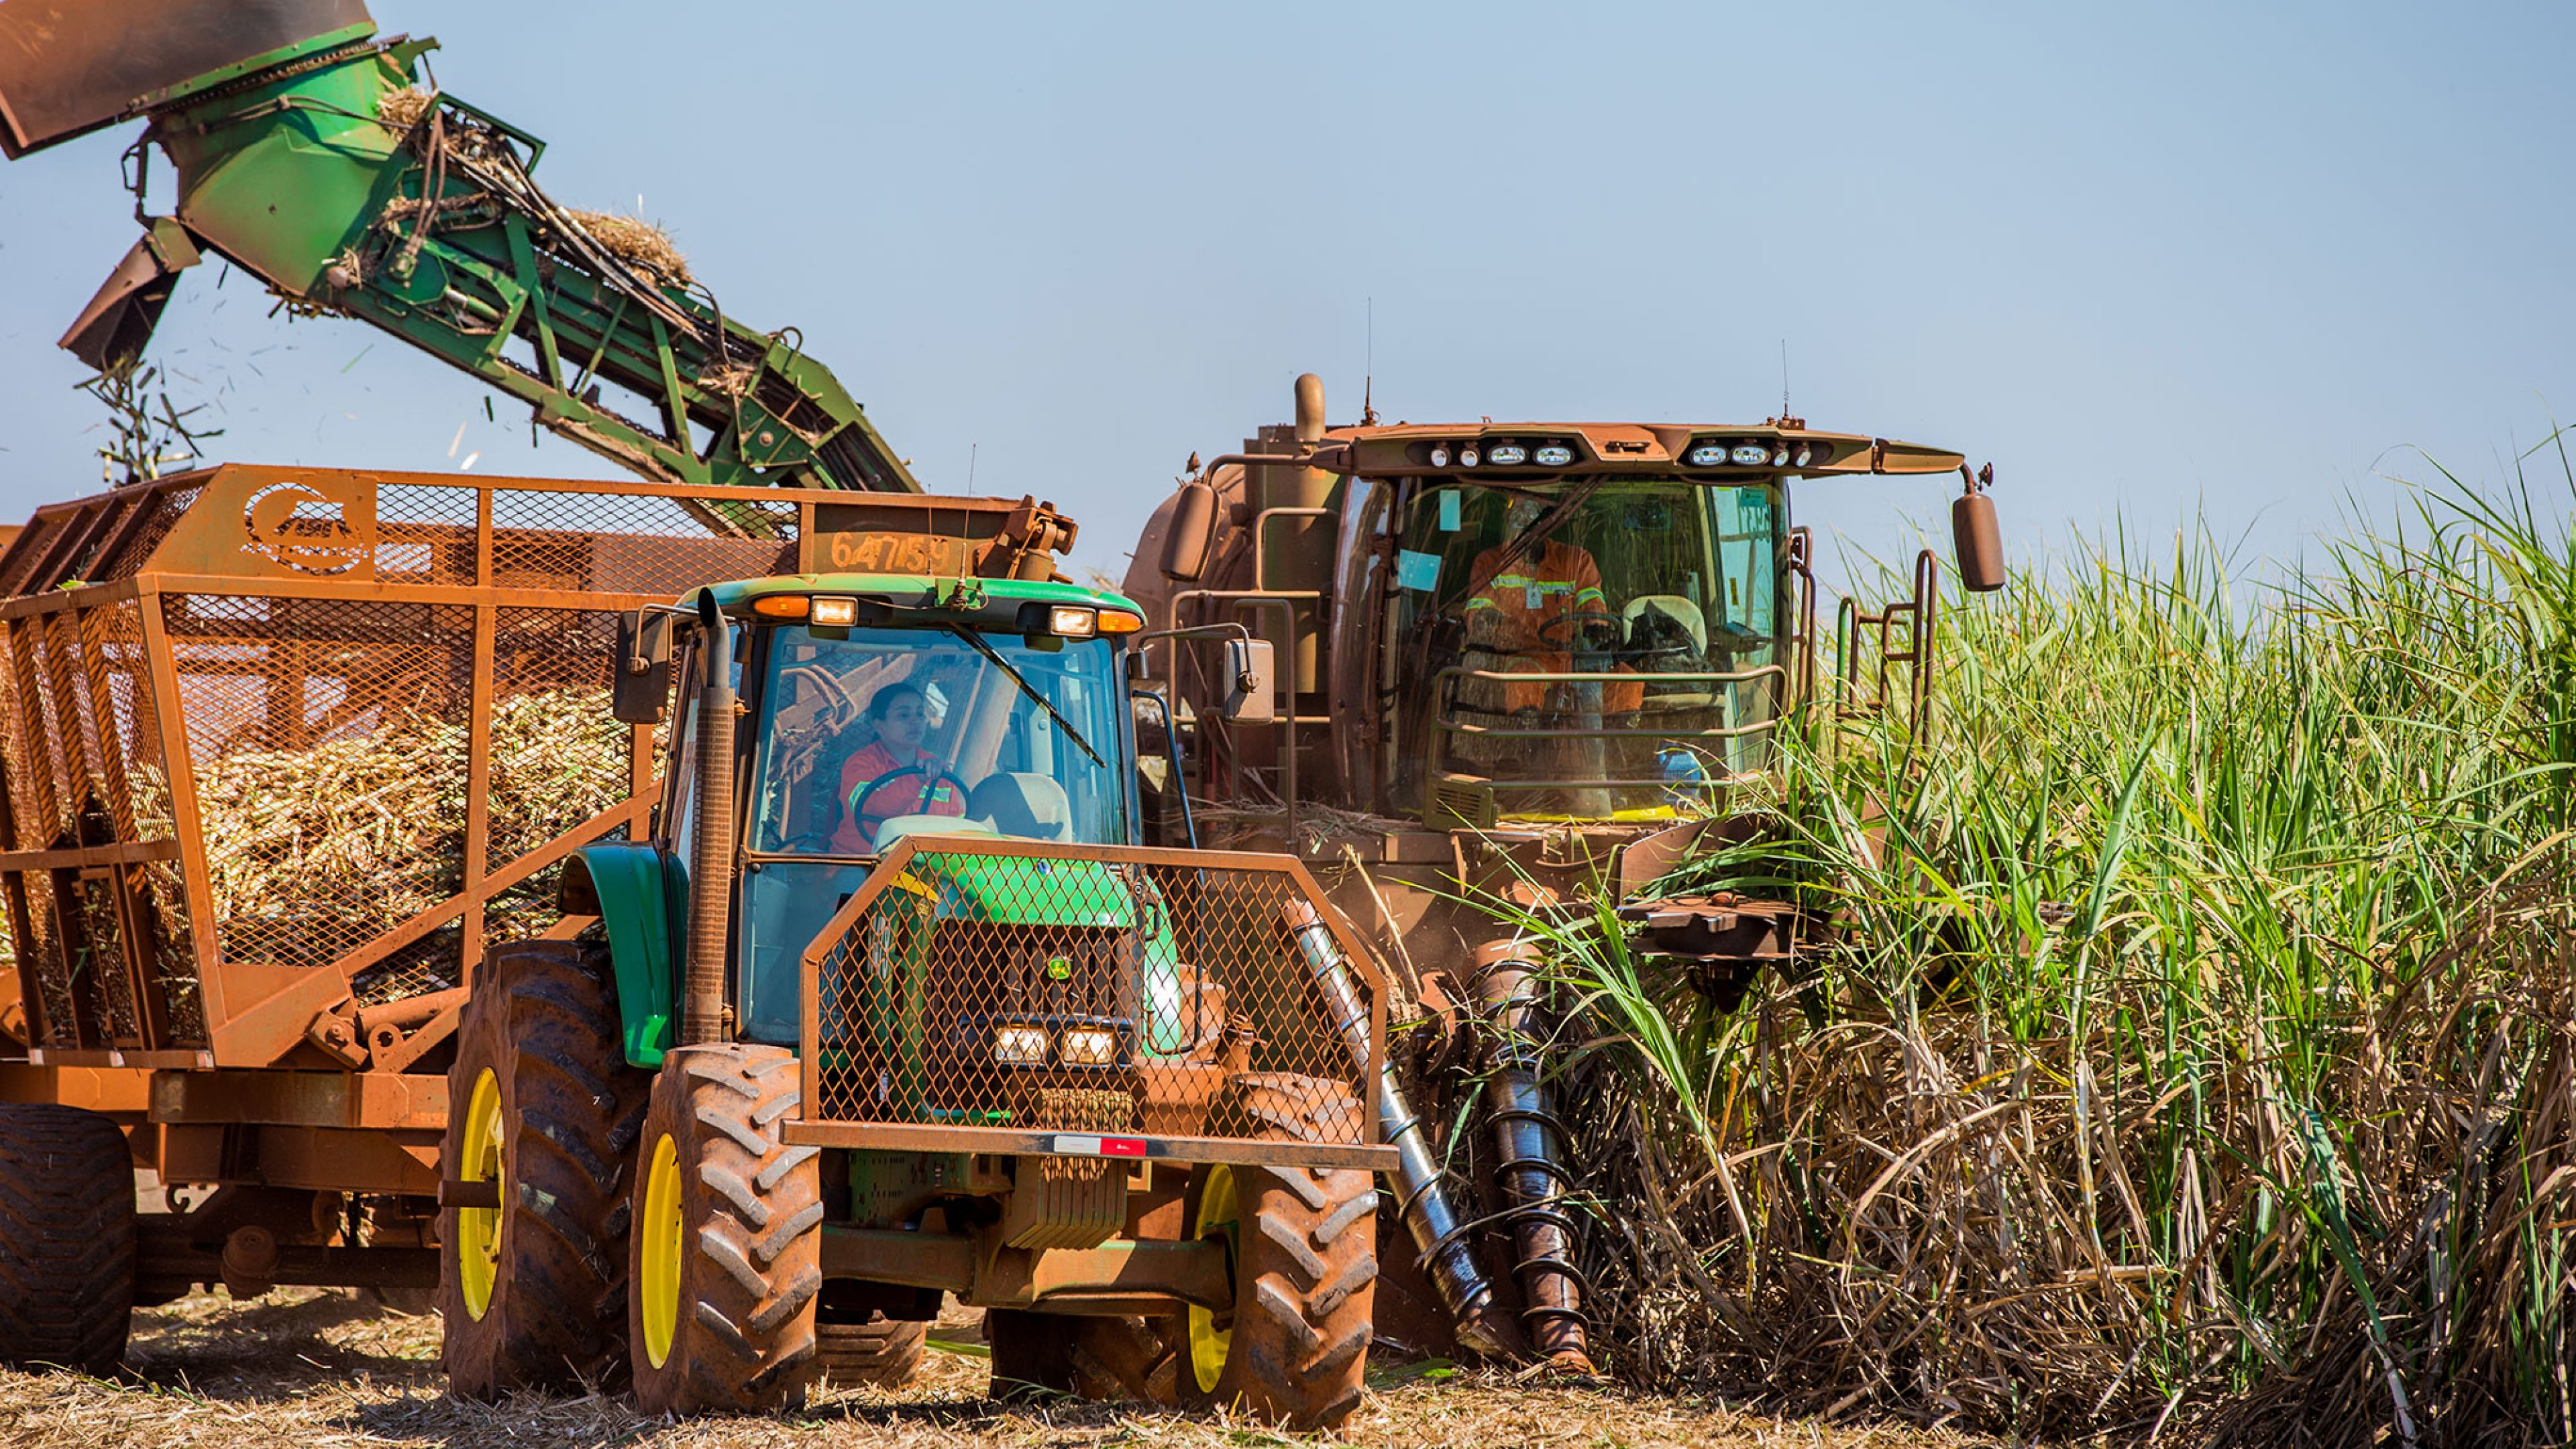 Using technology in biofuels